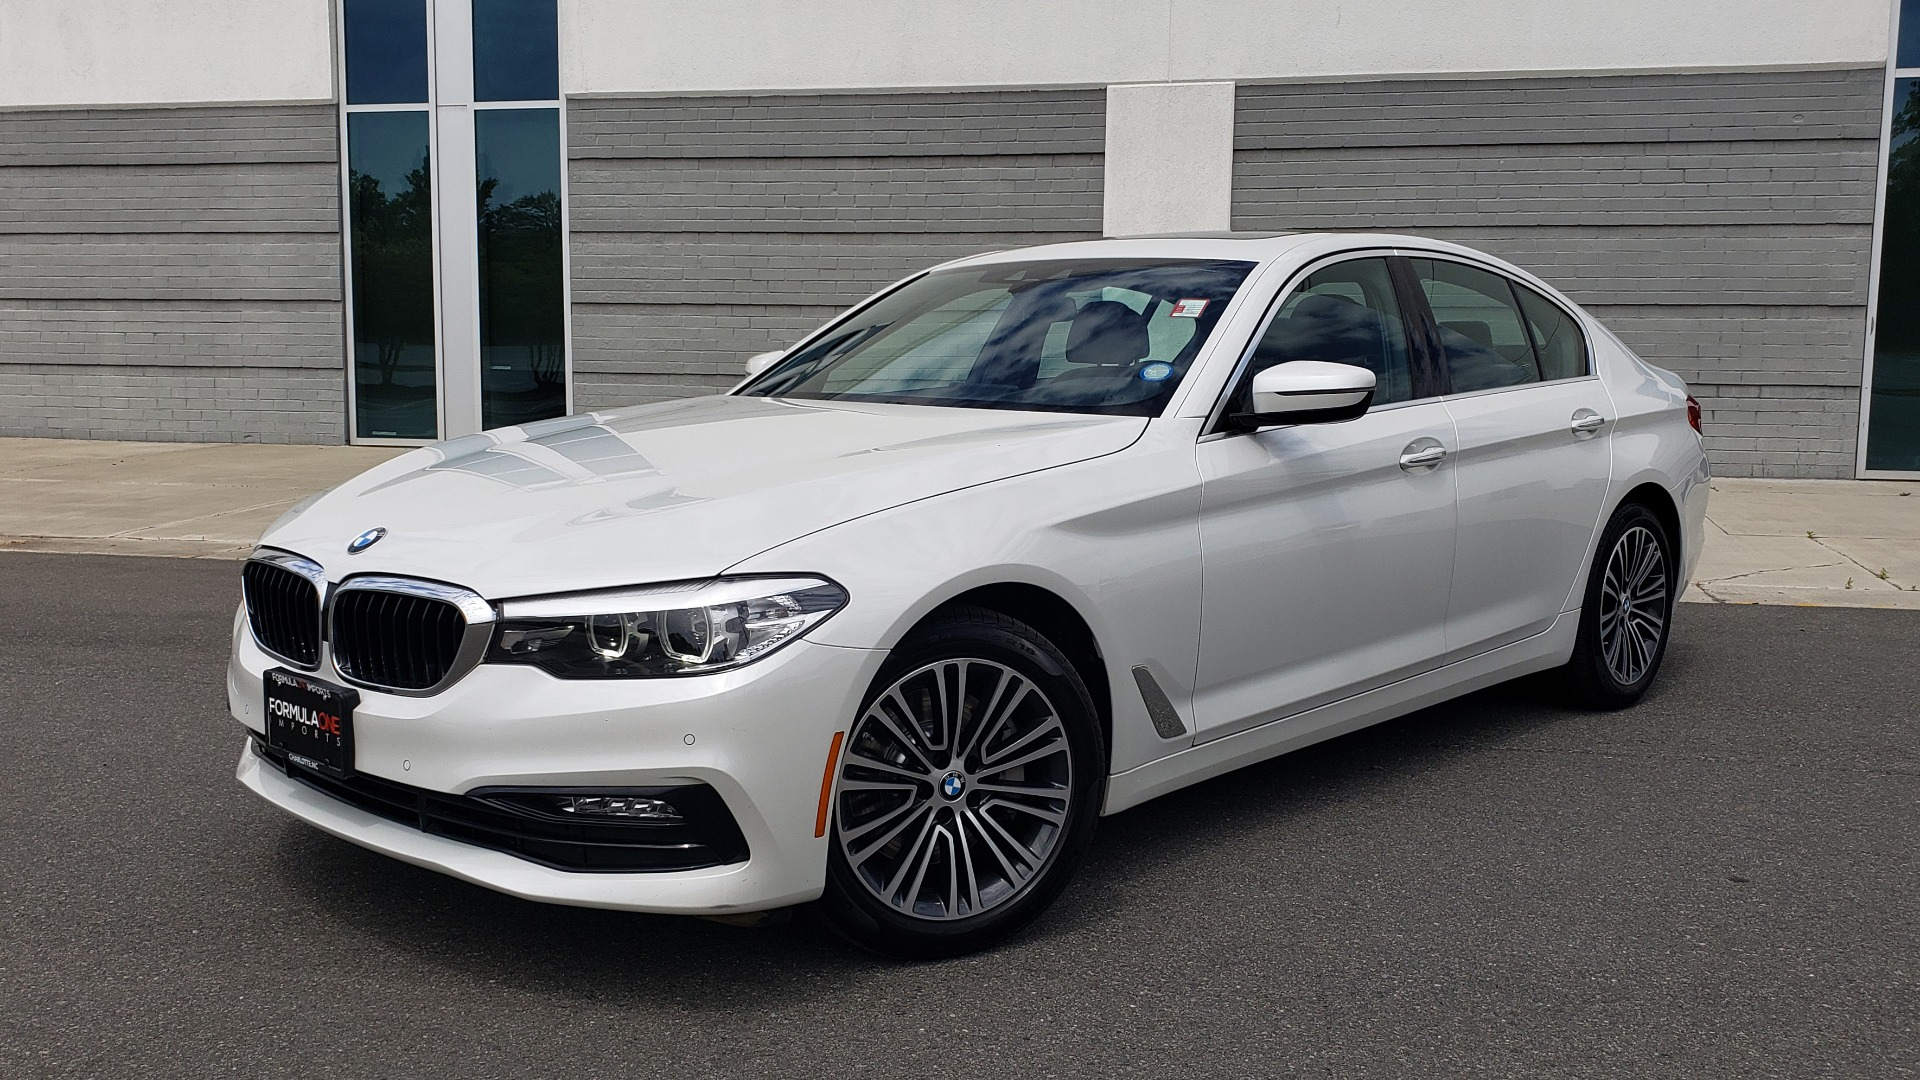 Used 2018 BMW 5 SERIES 530I XDRIVE PREMIUM / NAV / DRVR ASST / PARK ASST / H/K SND for sale $32,795 at Formula Imports in Charlotte NC 28227 1